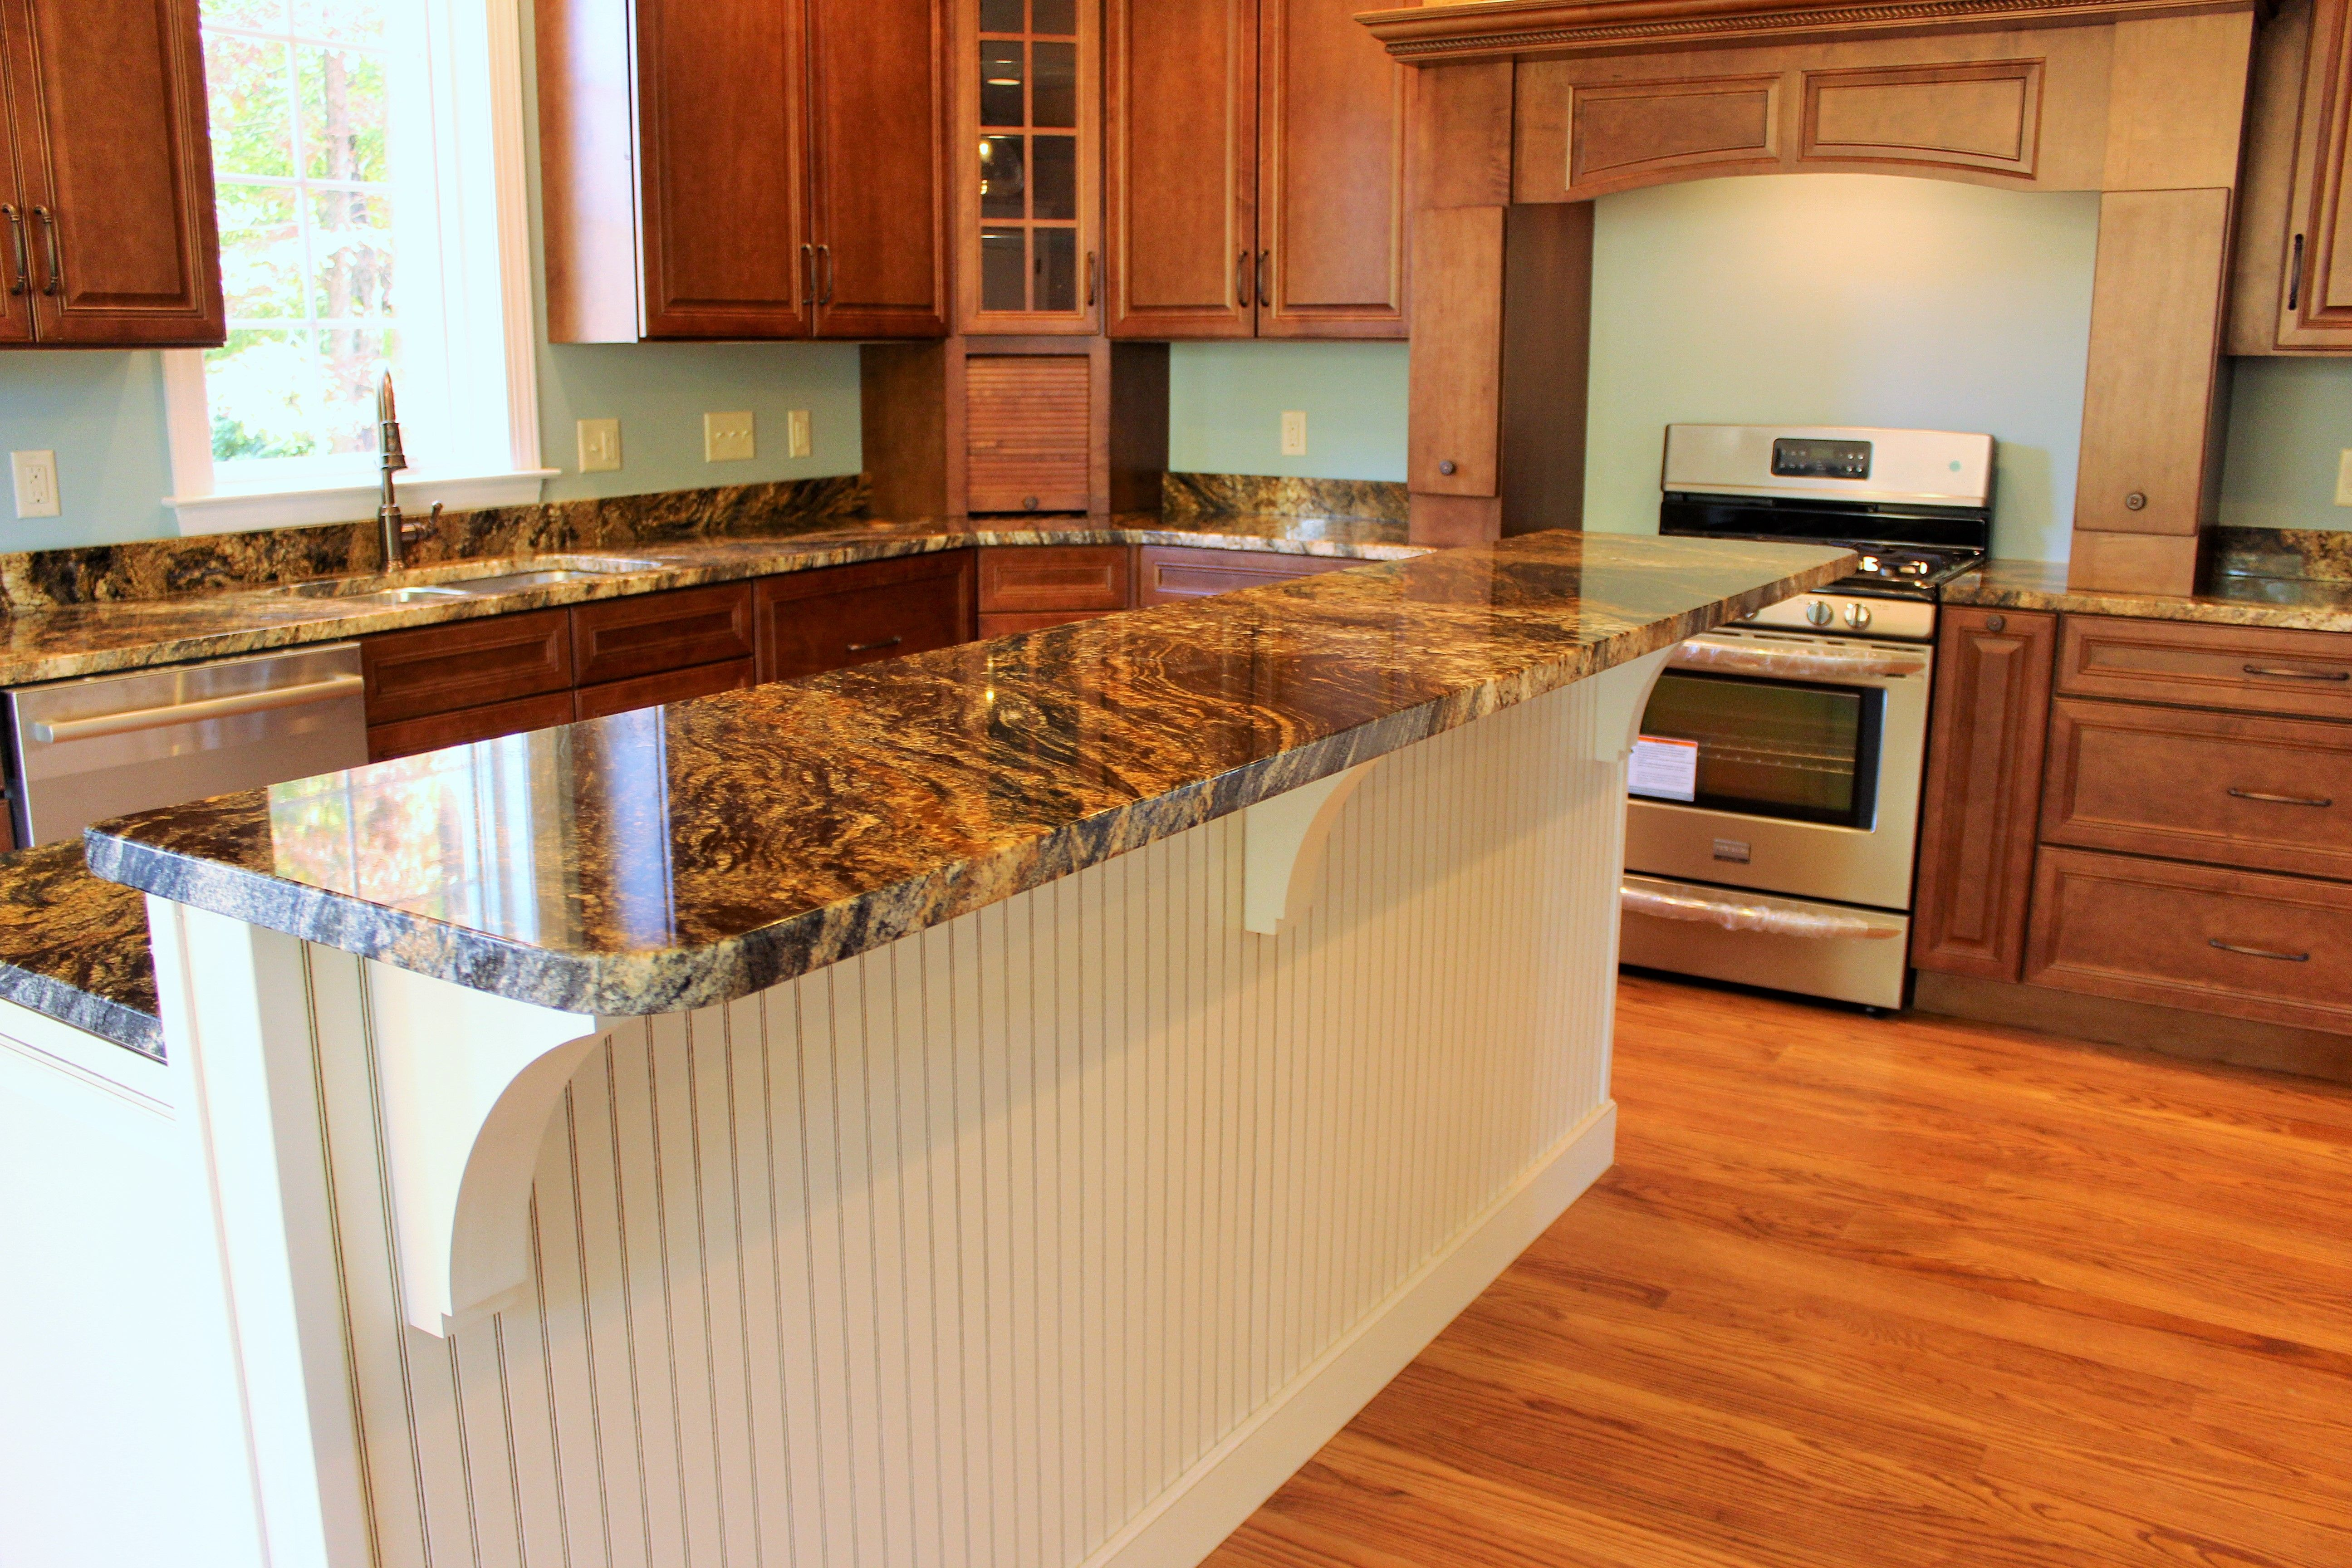 Matching Countertops With Cabinets Cabinetry Wellborn Cabinet Inc Select Series